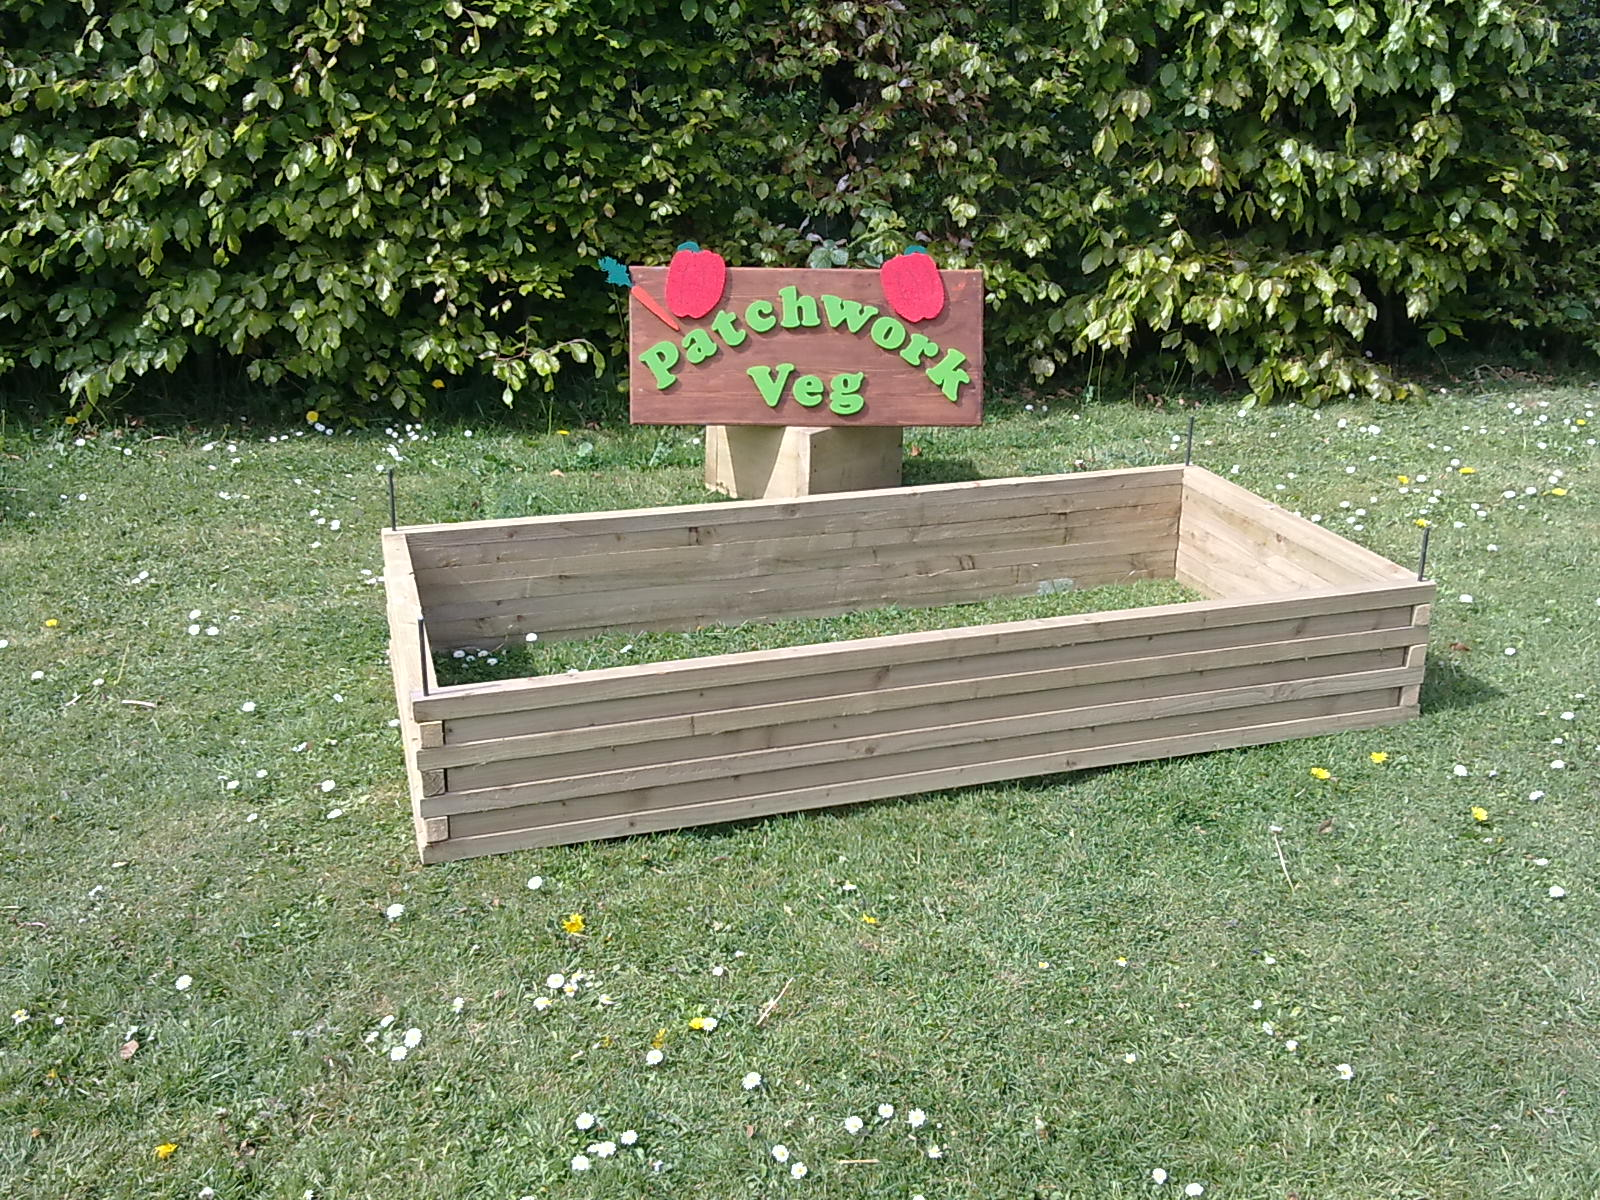 Garden bed finally a proper strong sturdy diy raised bed kit that